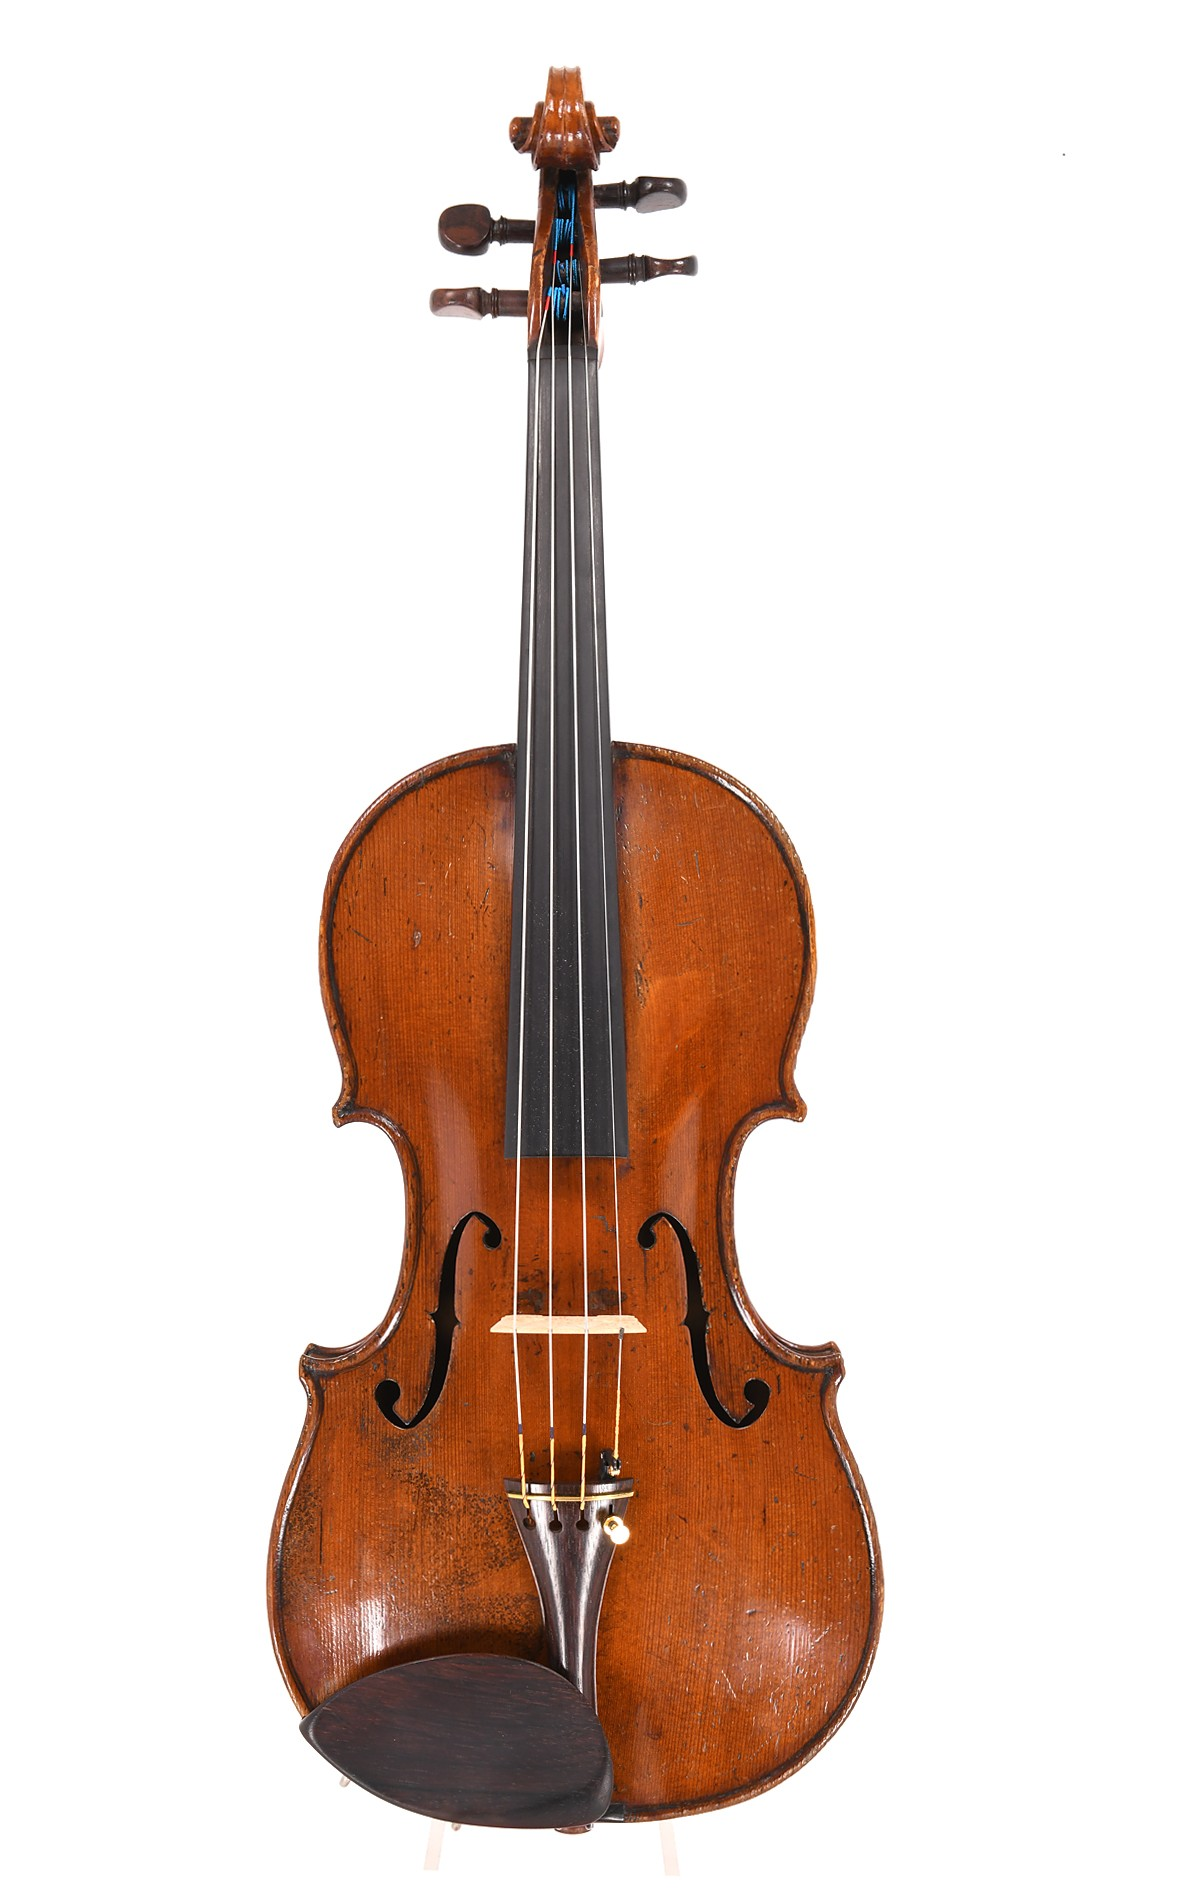 French violin by Nicolas Augustin Chappuy